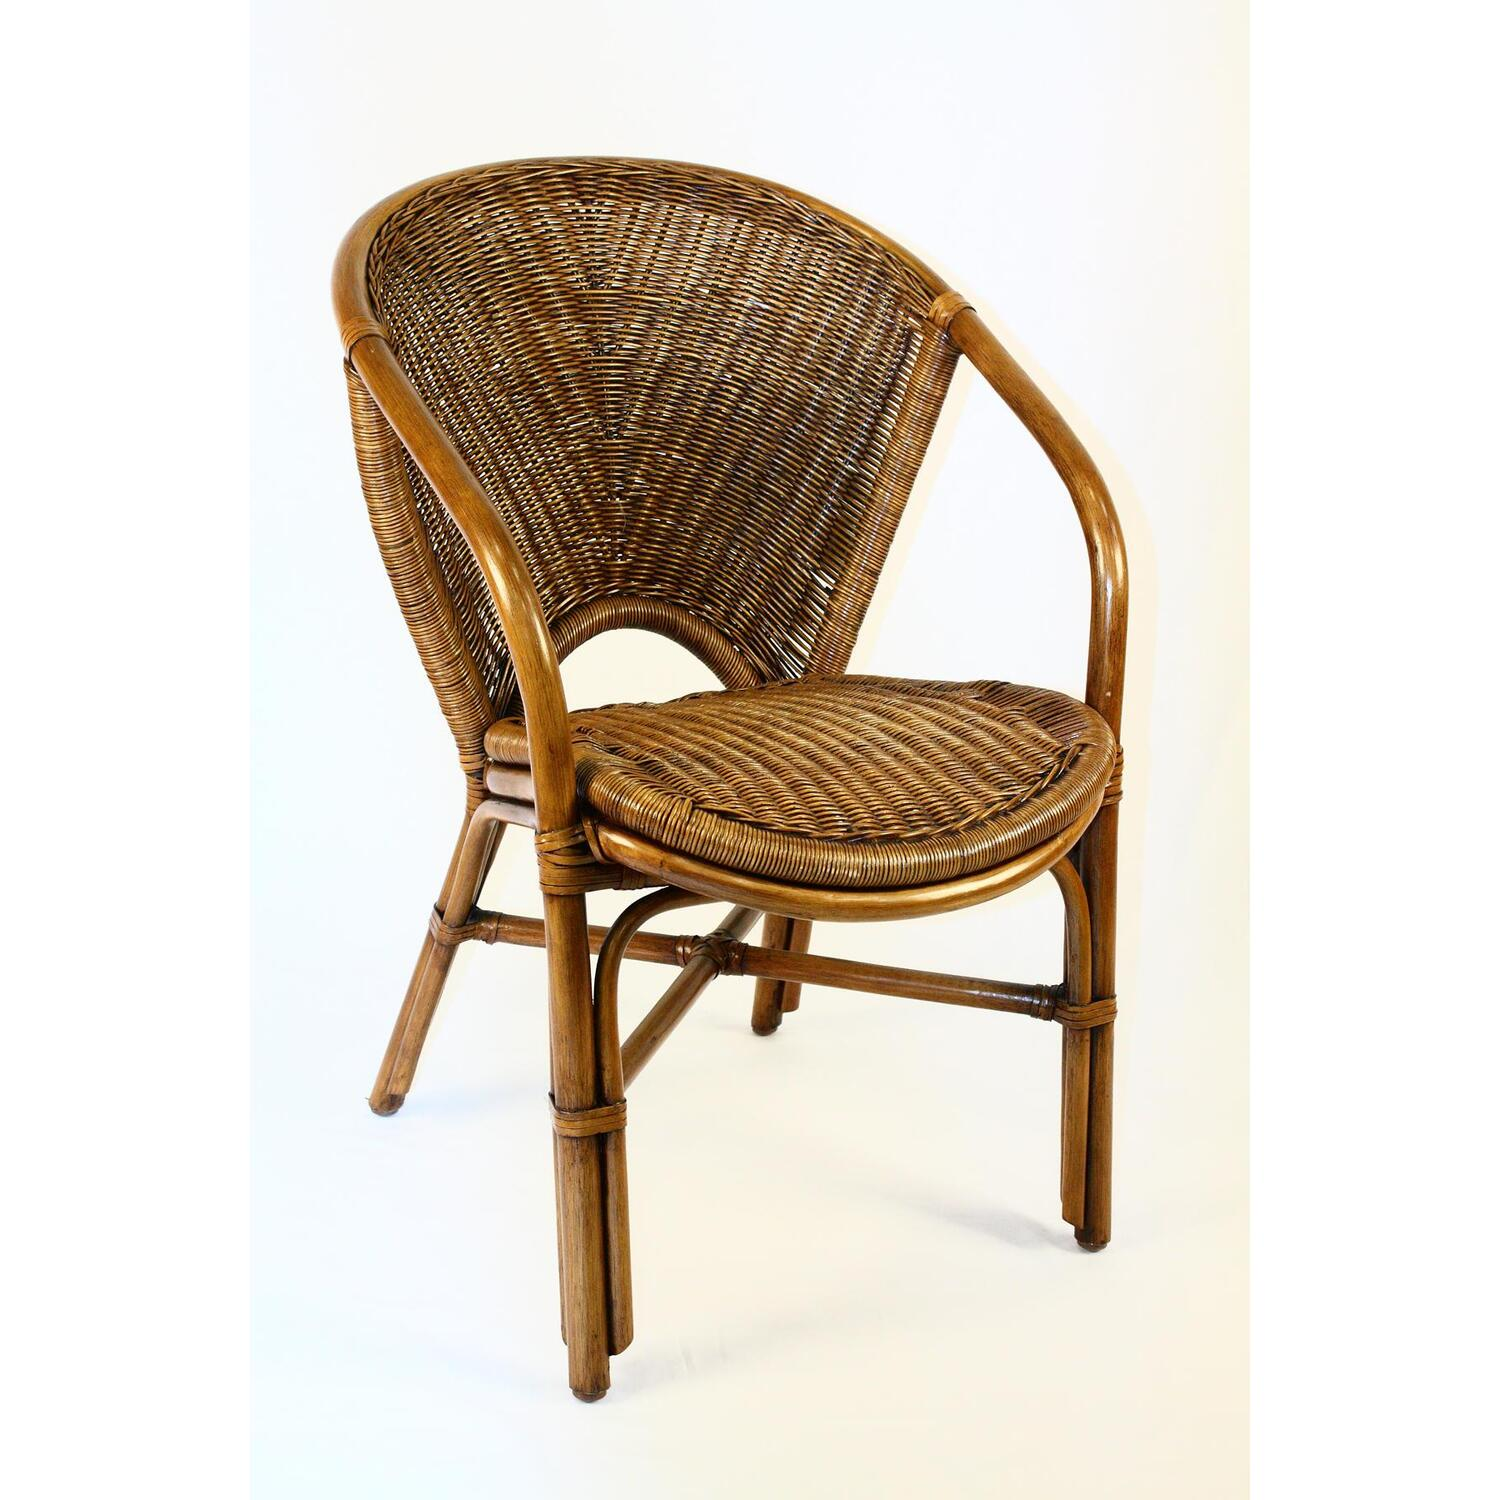 Indoor rattan wicker arm chair ojcommerce for Cane and wicker world